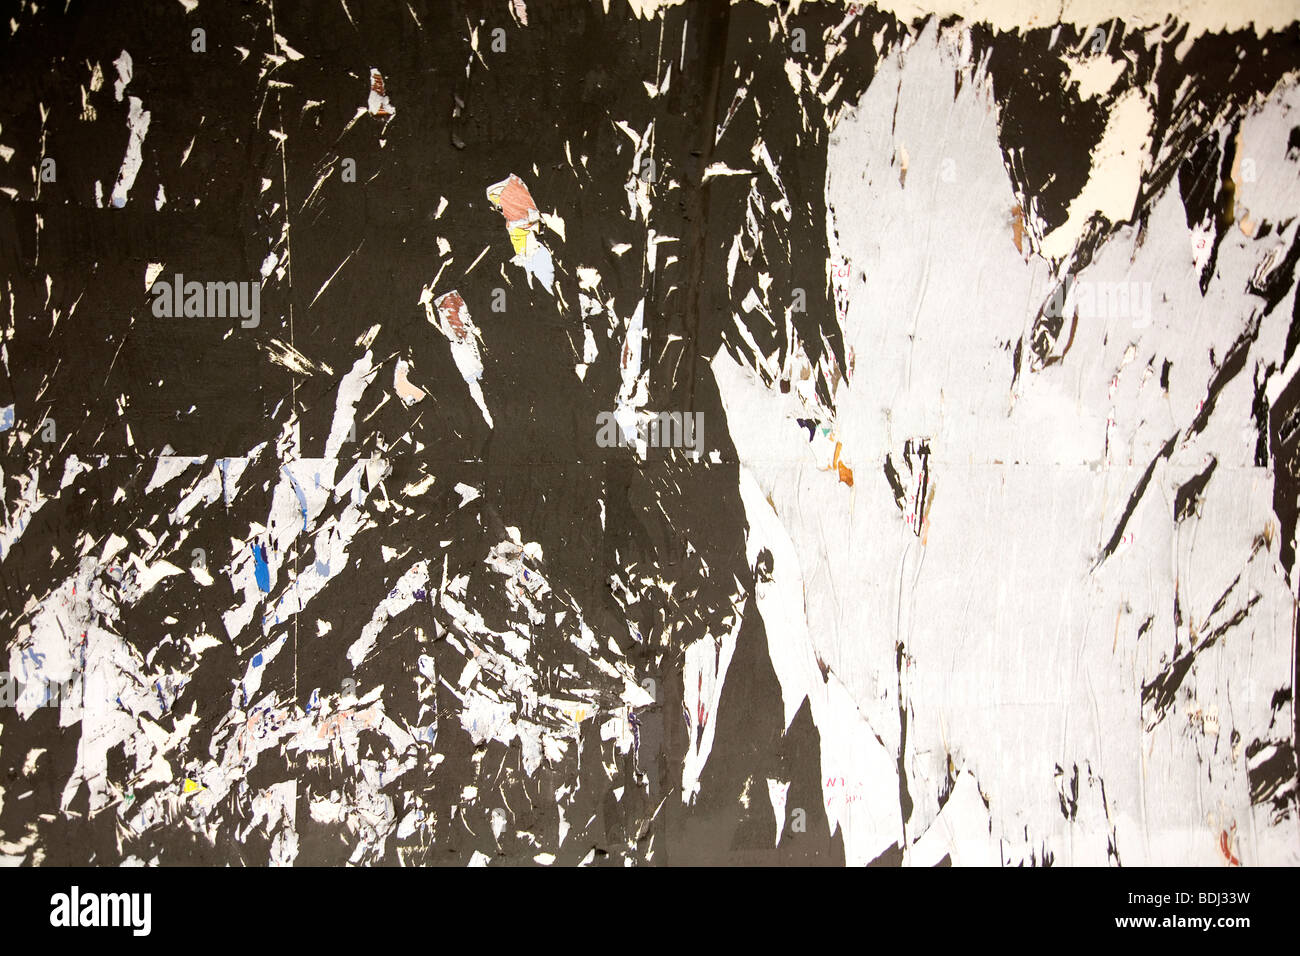 Previous Poster torn down - Stock Image